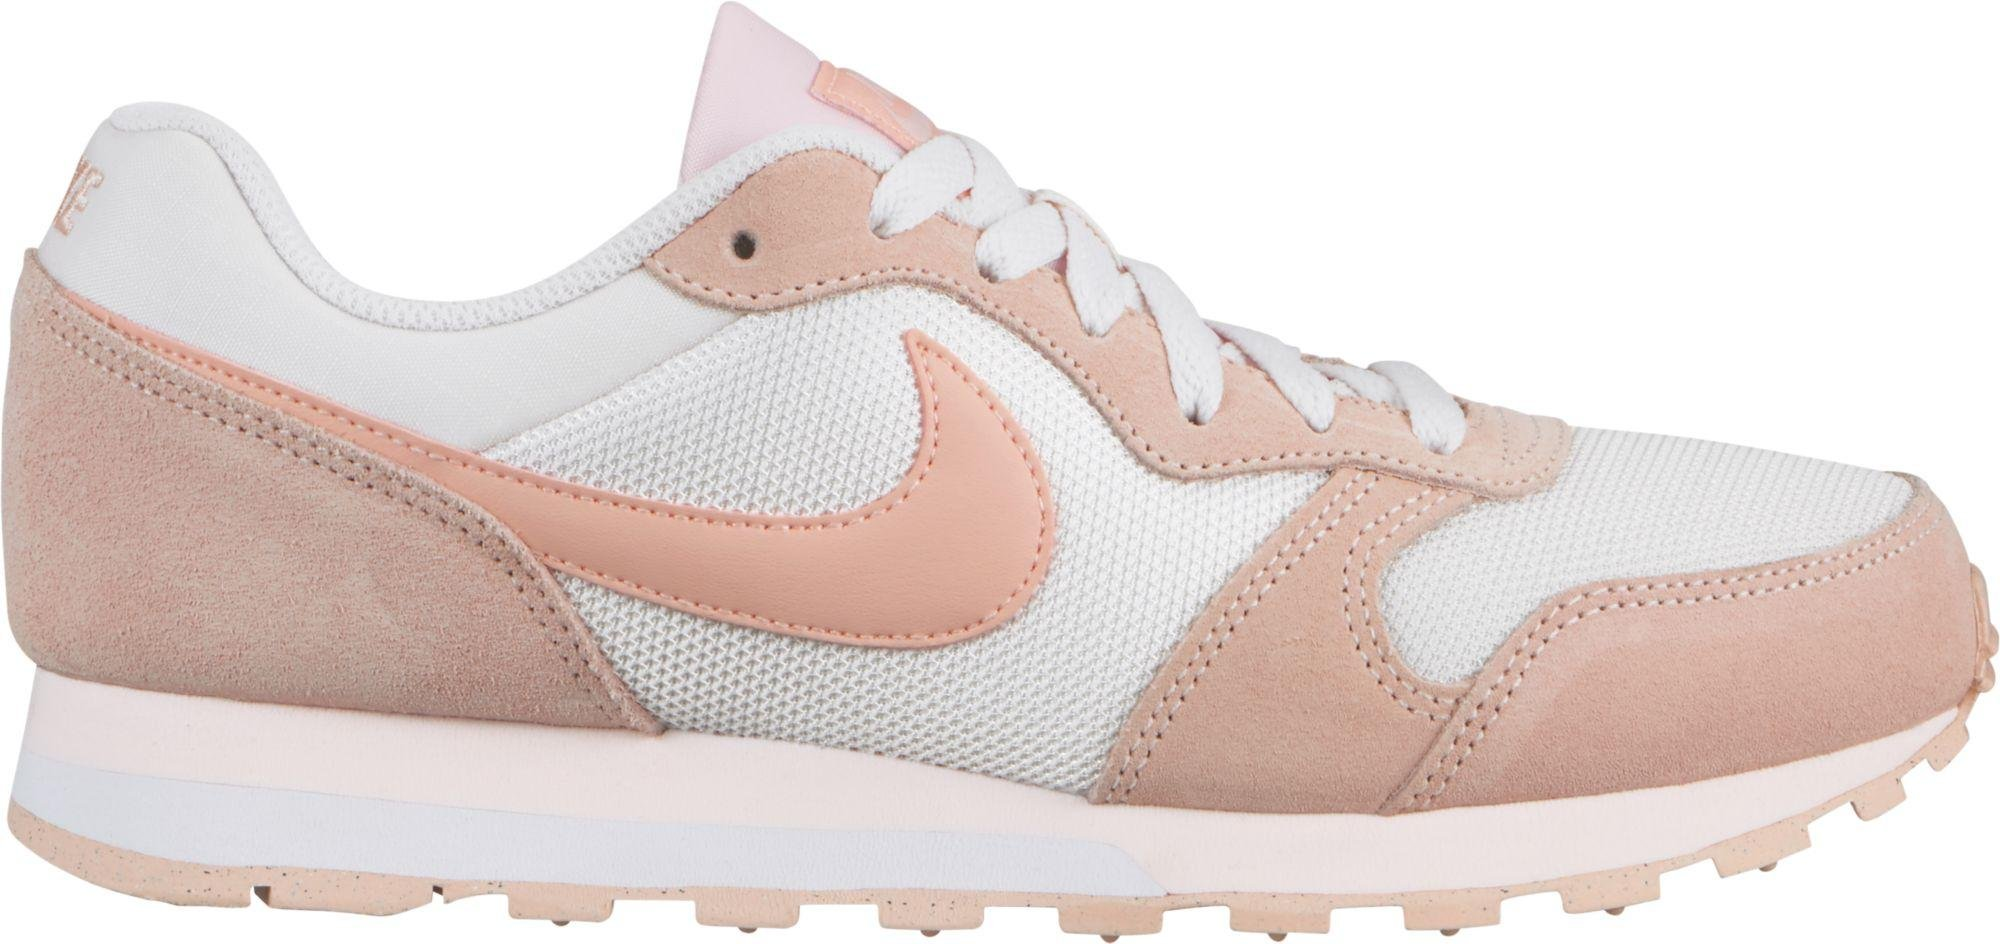 Shoes Nike WMNS MD RUNNER 2